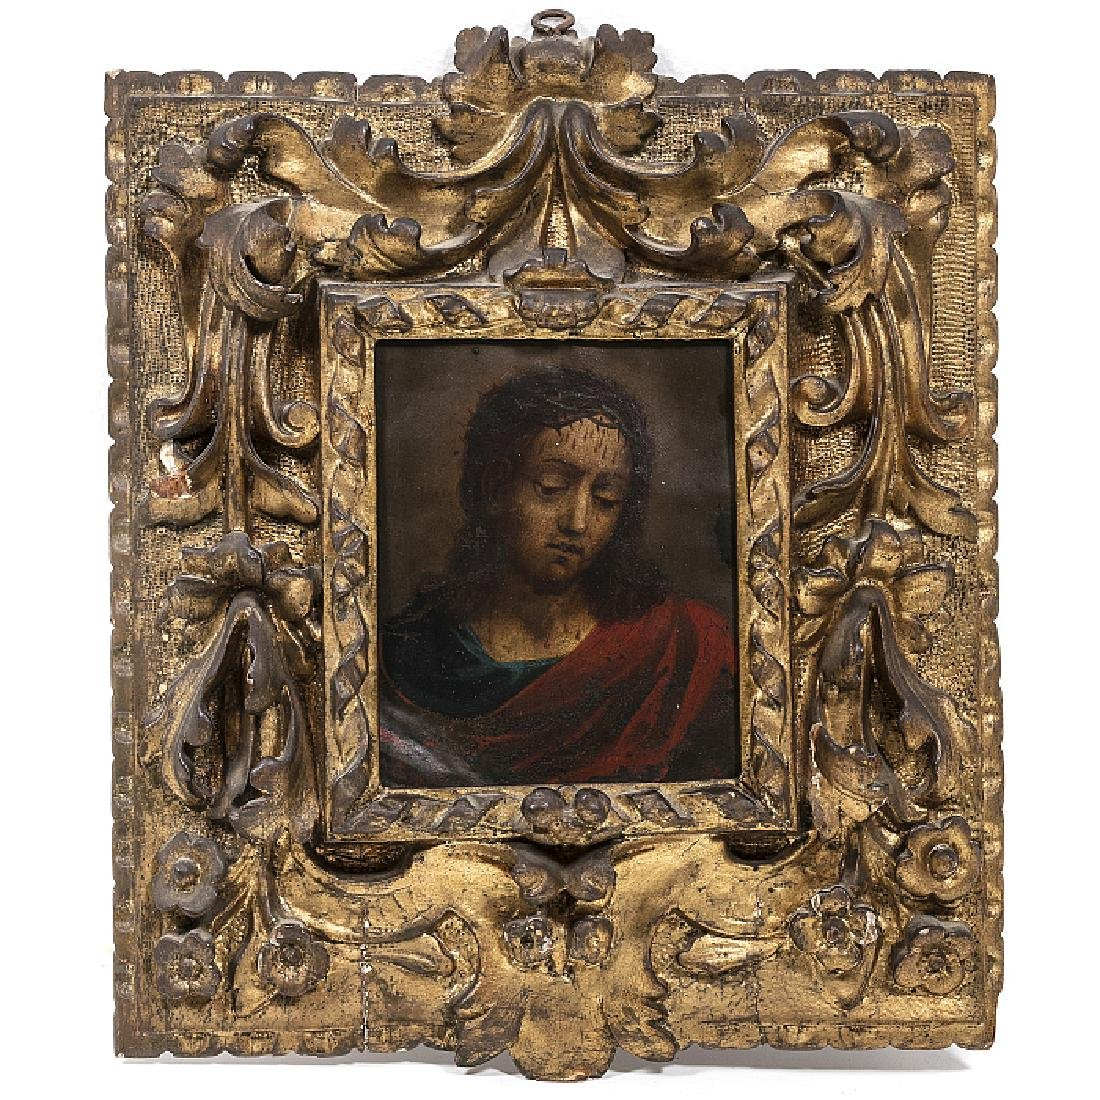 PORTUGUESE SCHOOL, 17th century - Jesus Christ